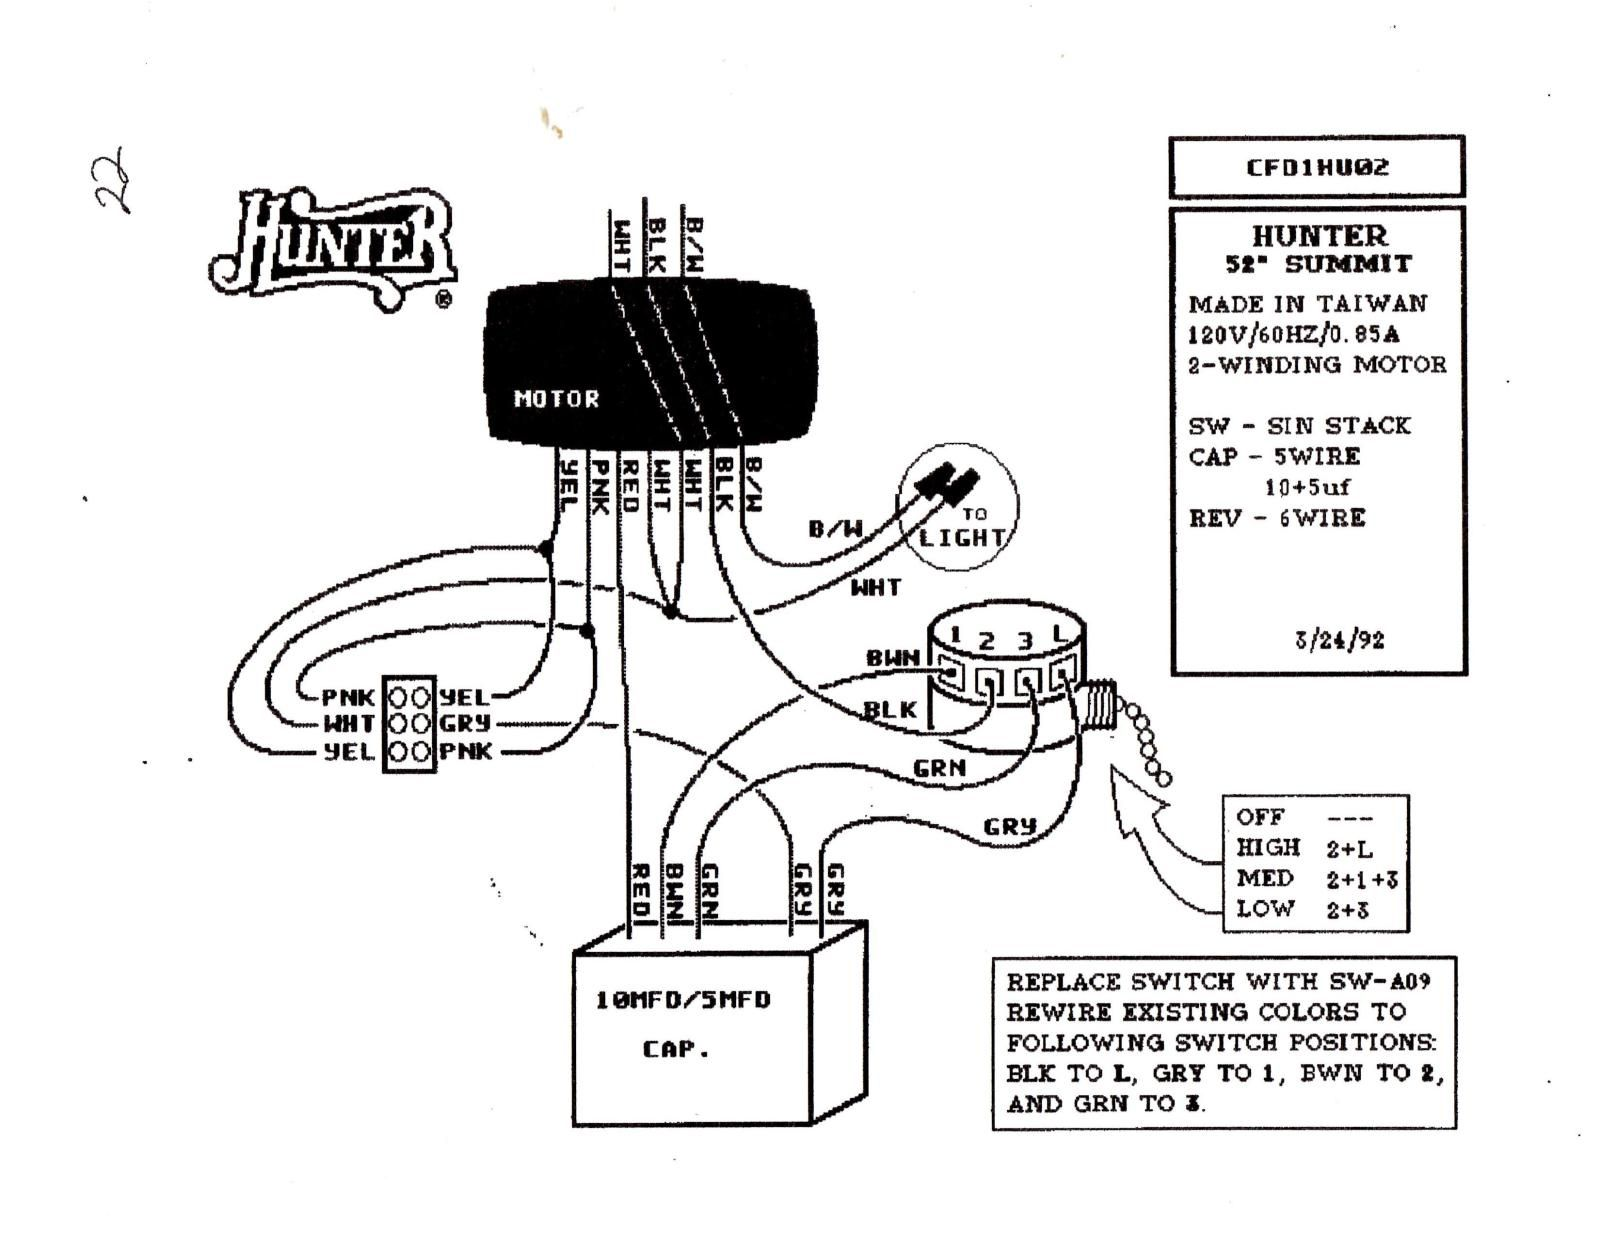 hunter ceiling fan speed switch wiring diagram switch in 2019 Hunter Ceiling Fan Wiring Diagram